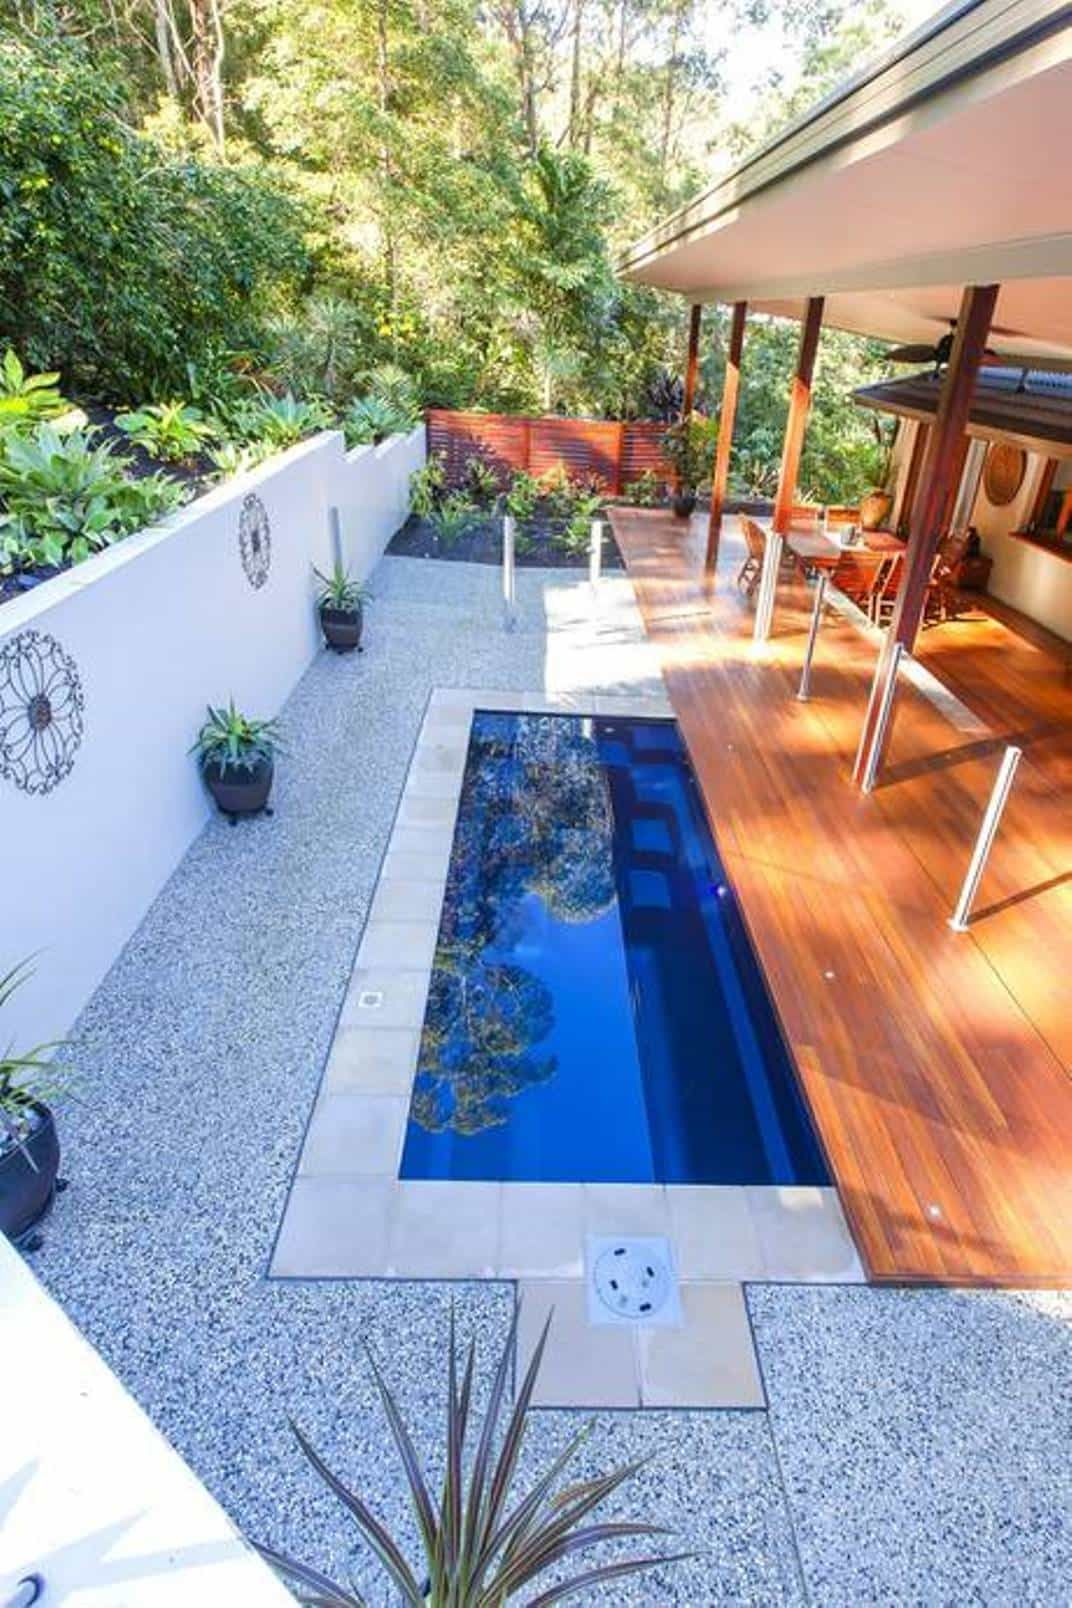 Landscaping And Outdoor Building Plunge Pool Designs Rectangular Plunge Pool Design Swimming Pools Backyard Swimming Pool Designs Swimming Pool Landscaping